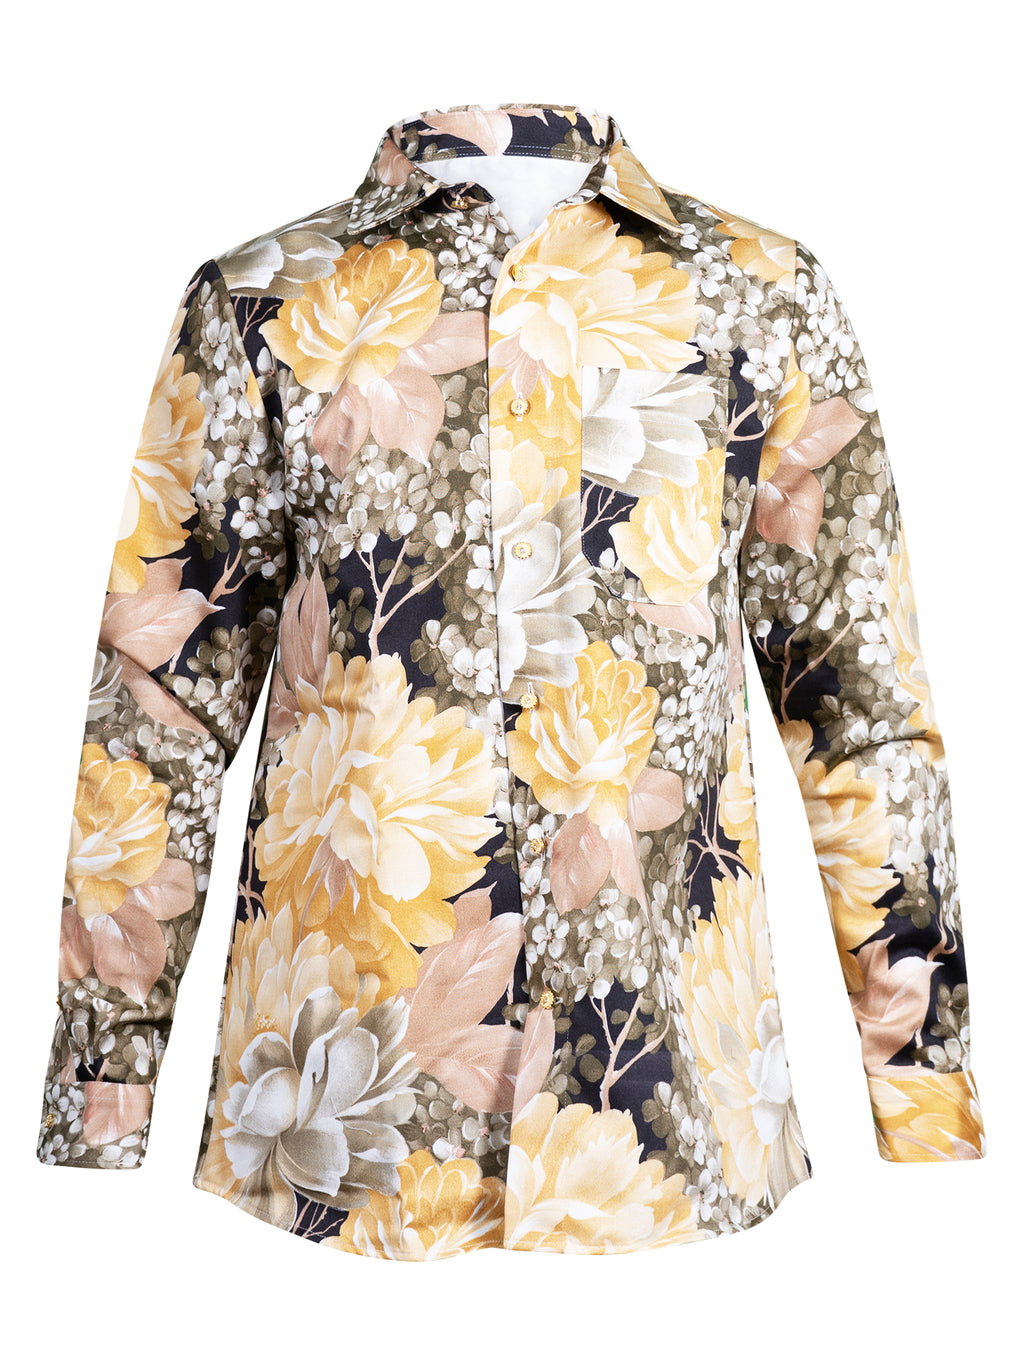 KULIK Silver Pick 3in1  Bucketbag